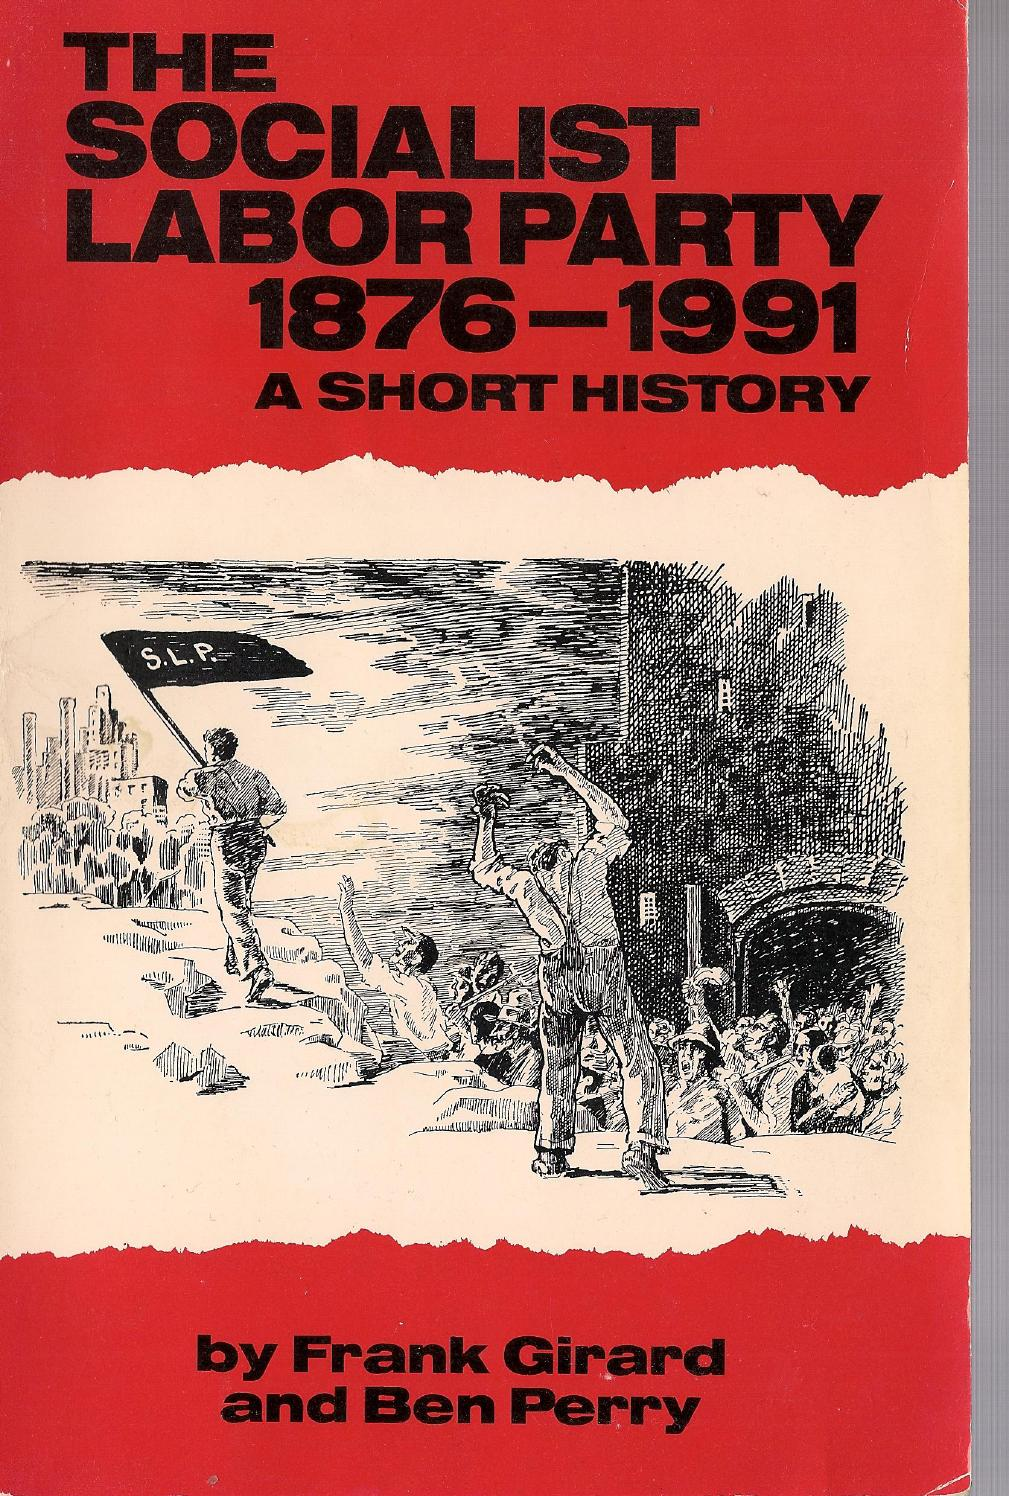 The Socialist Labor Party, 1876-1991: A Short History by